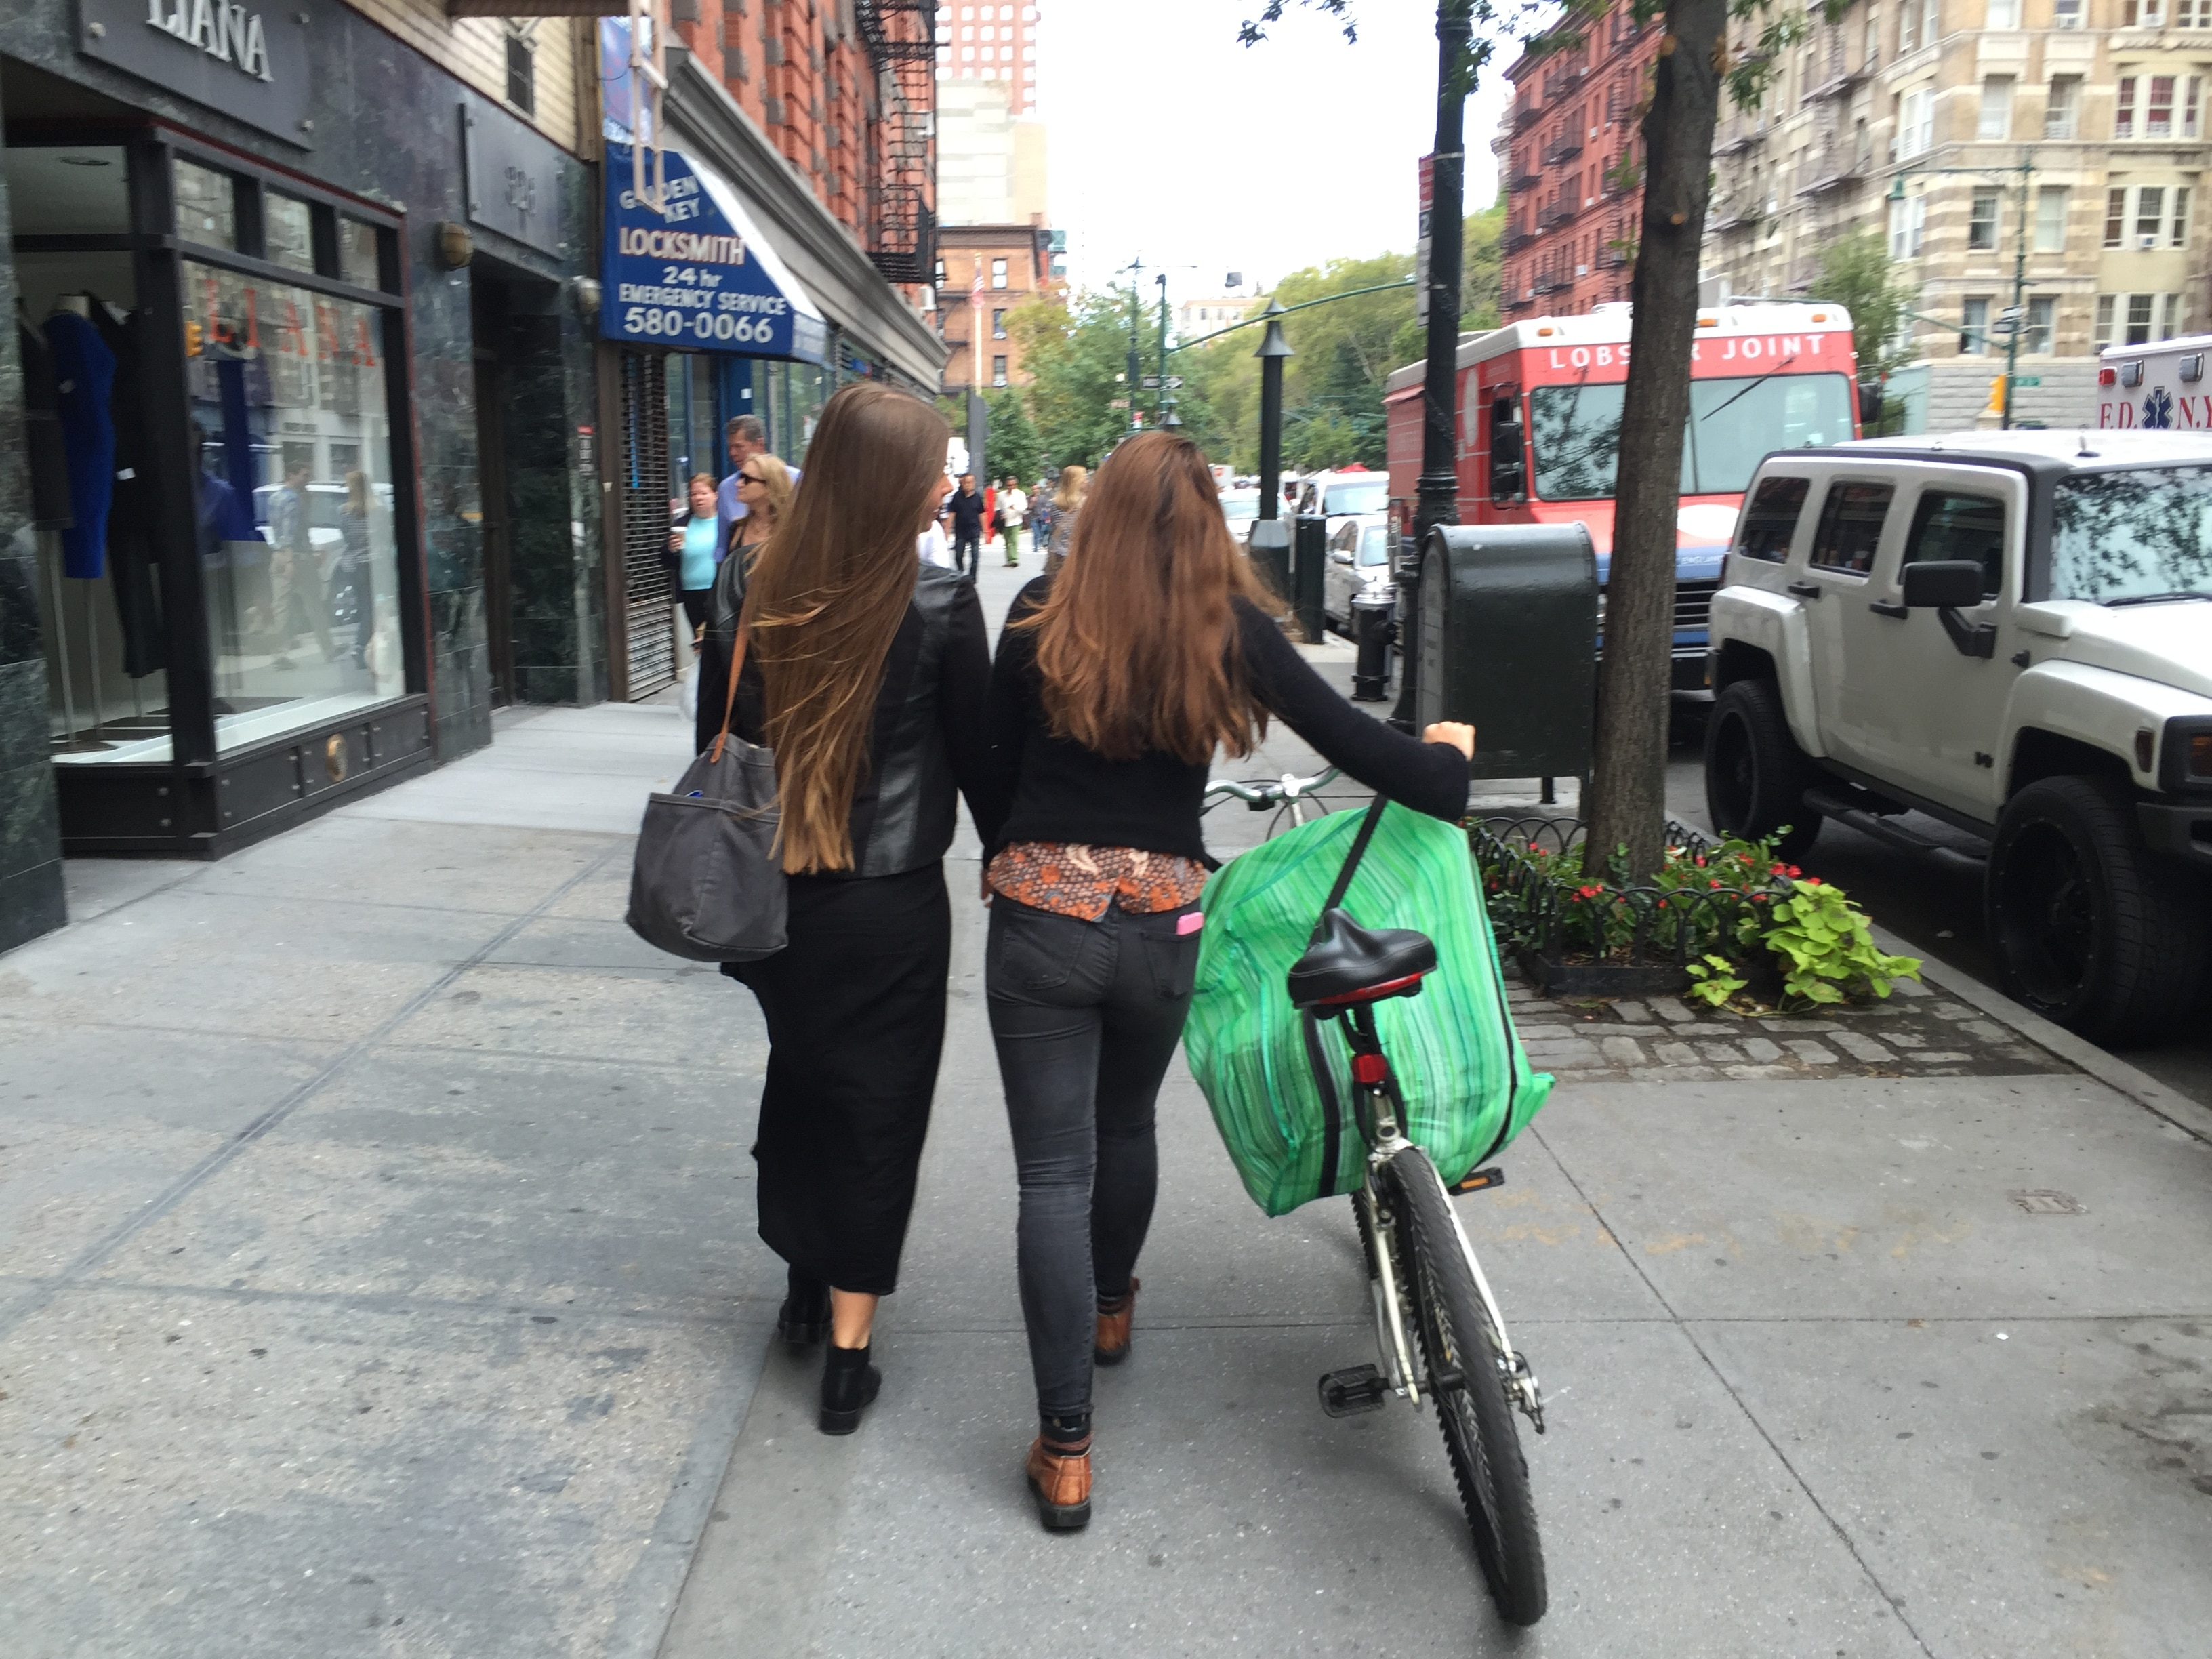 Off to the compost pick up spot in New York